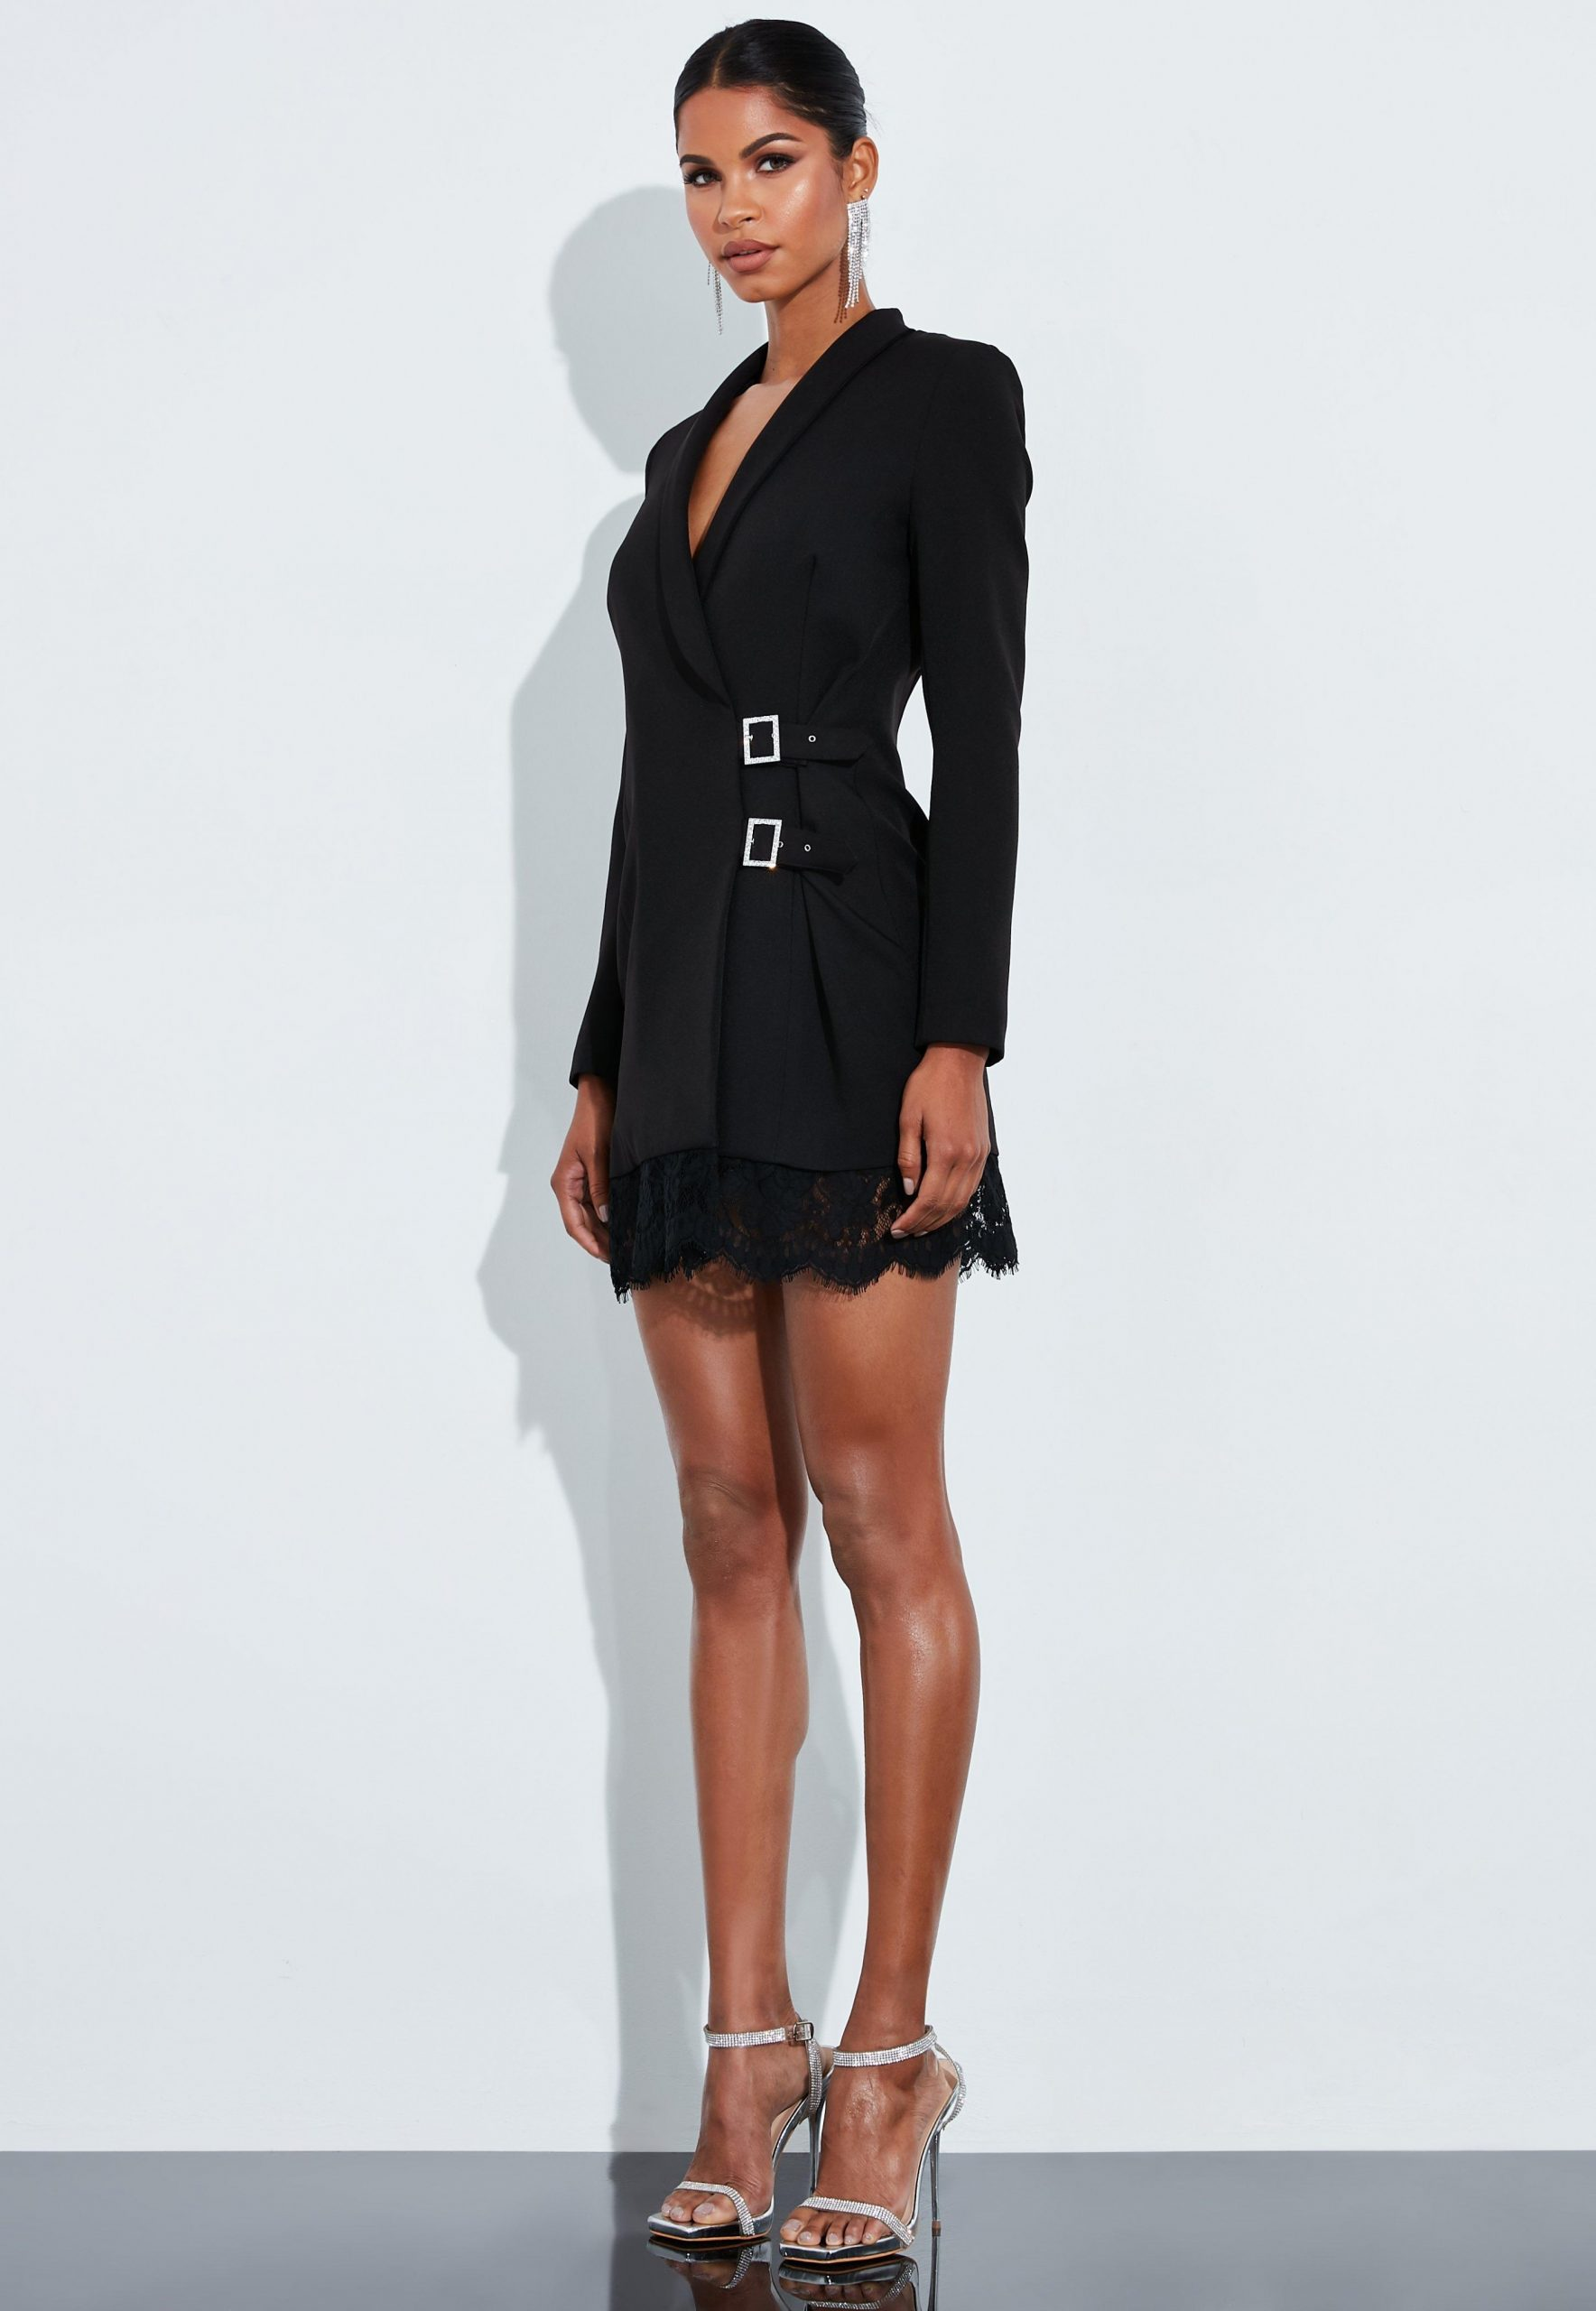 lace kleid with blazer where can i buy 11c 11a